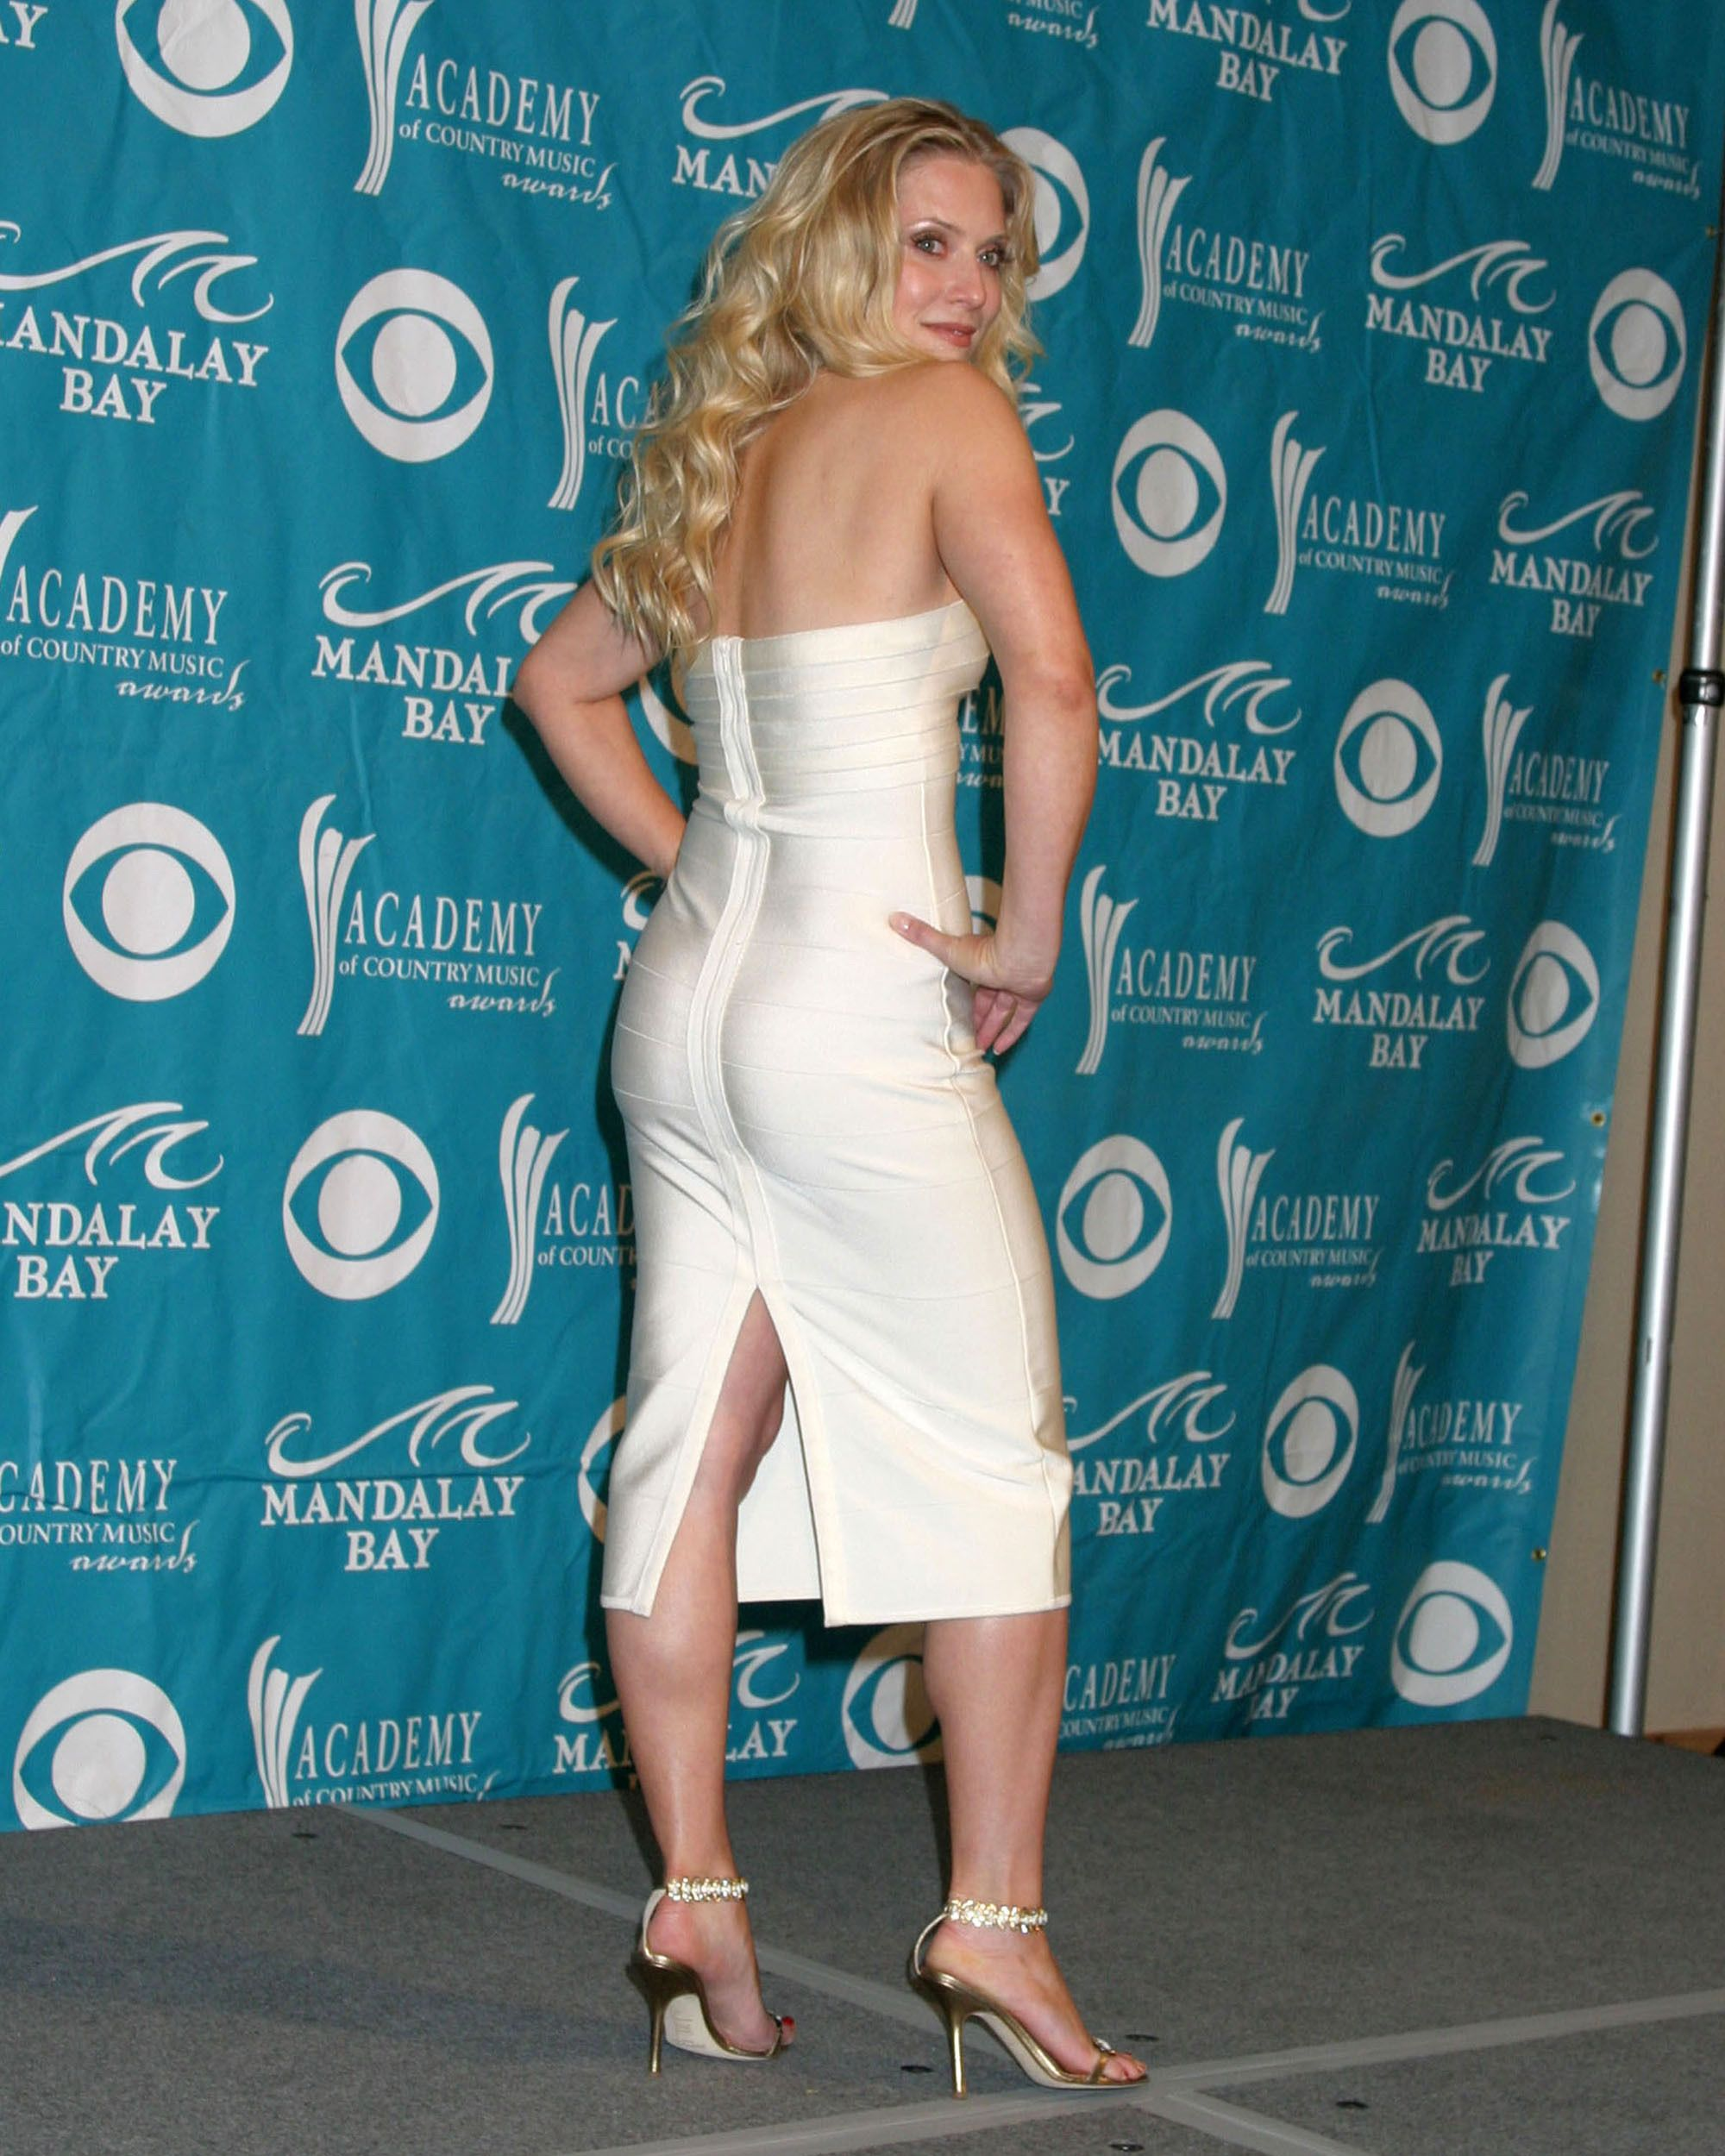 49 Hot Pictures Of Emily Procter Will Make You Stare The Monitor For